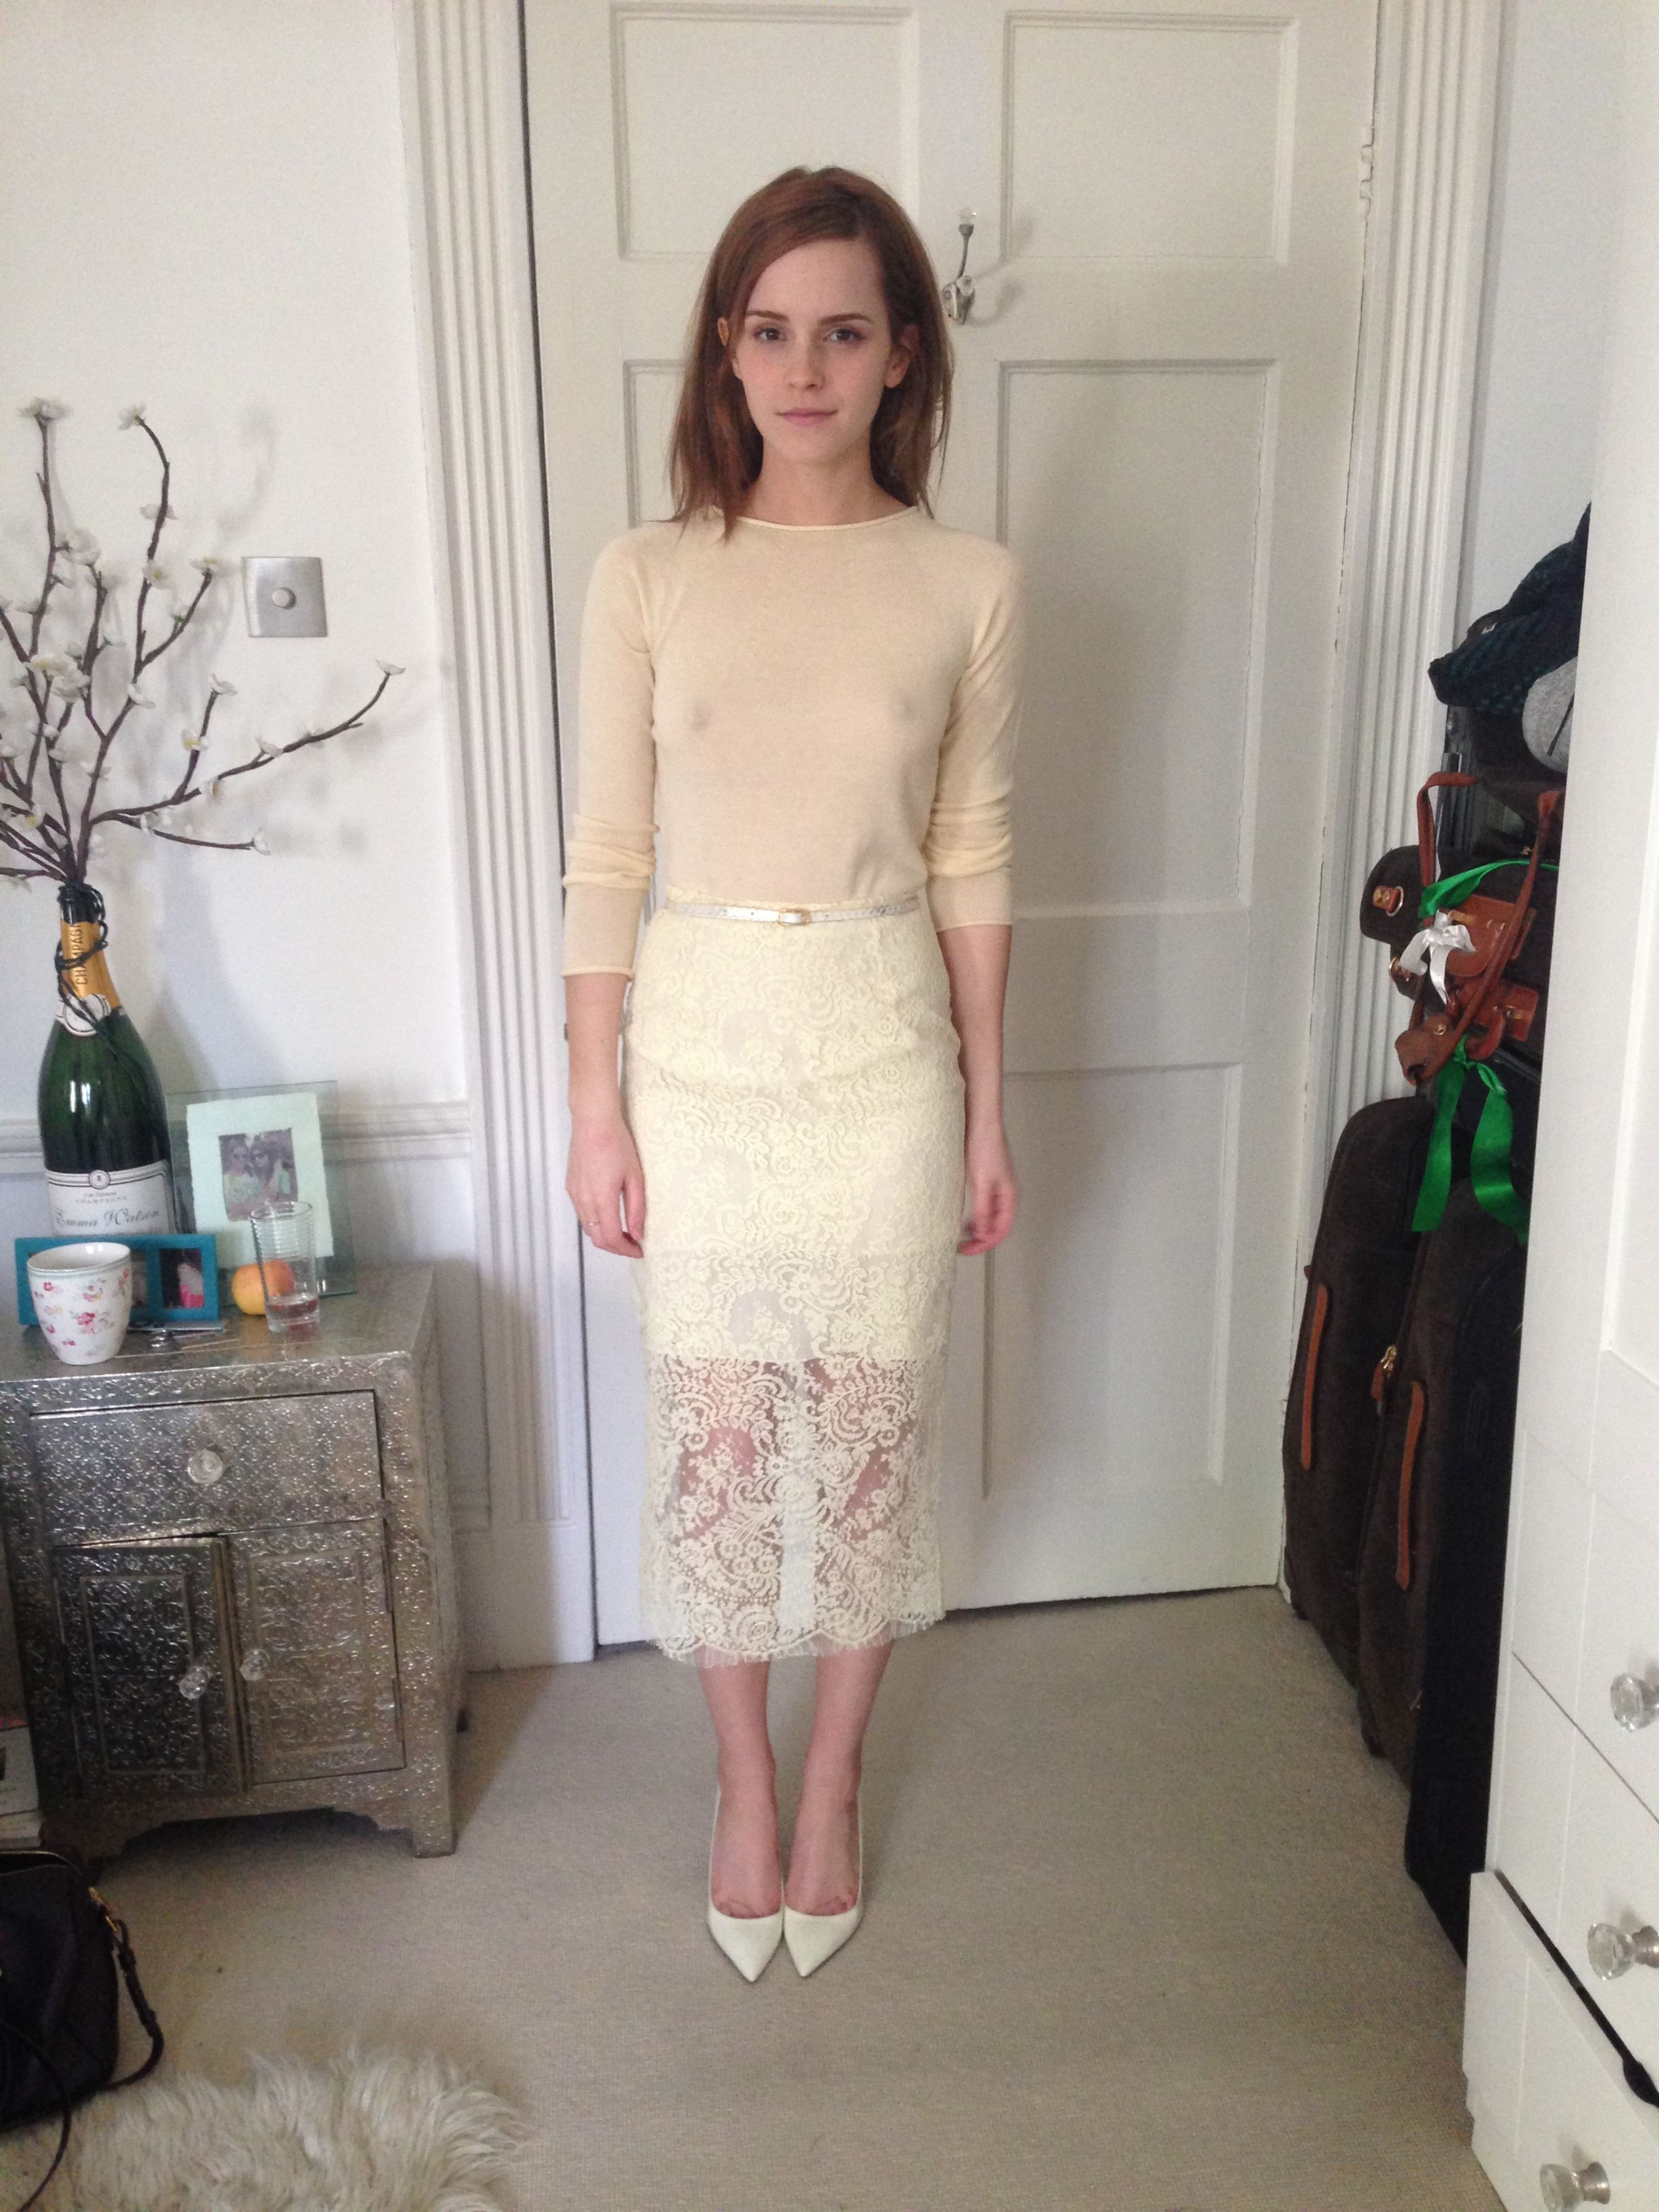 Emma Watson Leaked Photos — Page 6 of 8 — #TheFappening